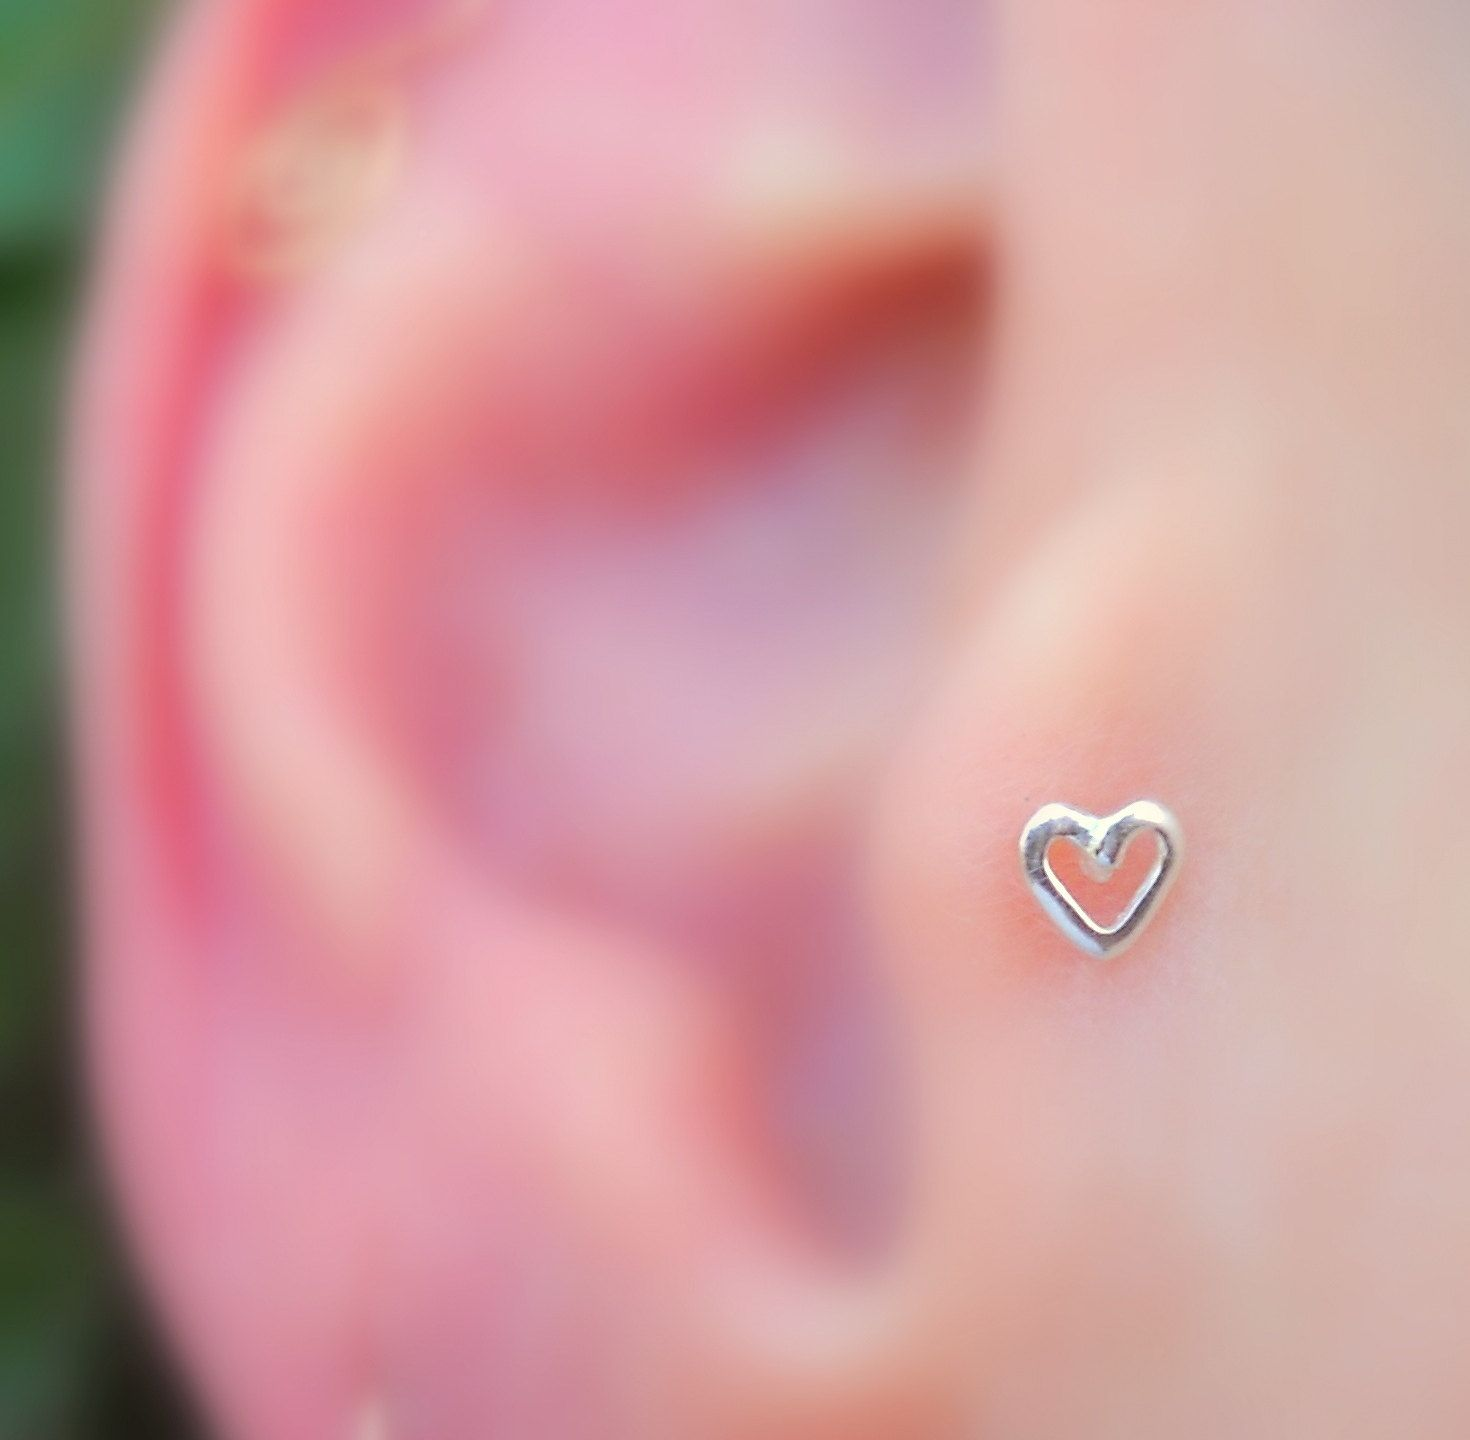 Tragus Earring  Nose Ring  Cartilage Earring  Sterling Silver Valentine Heart  Tragus Stud